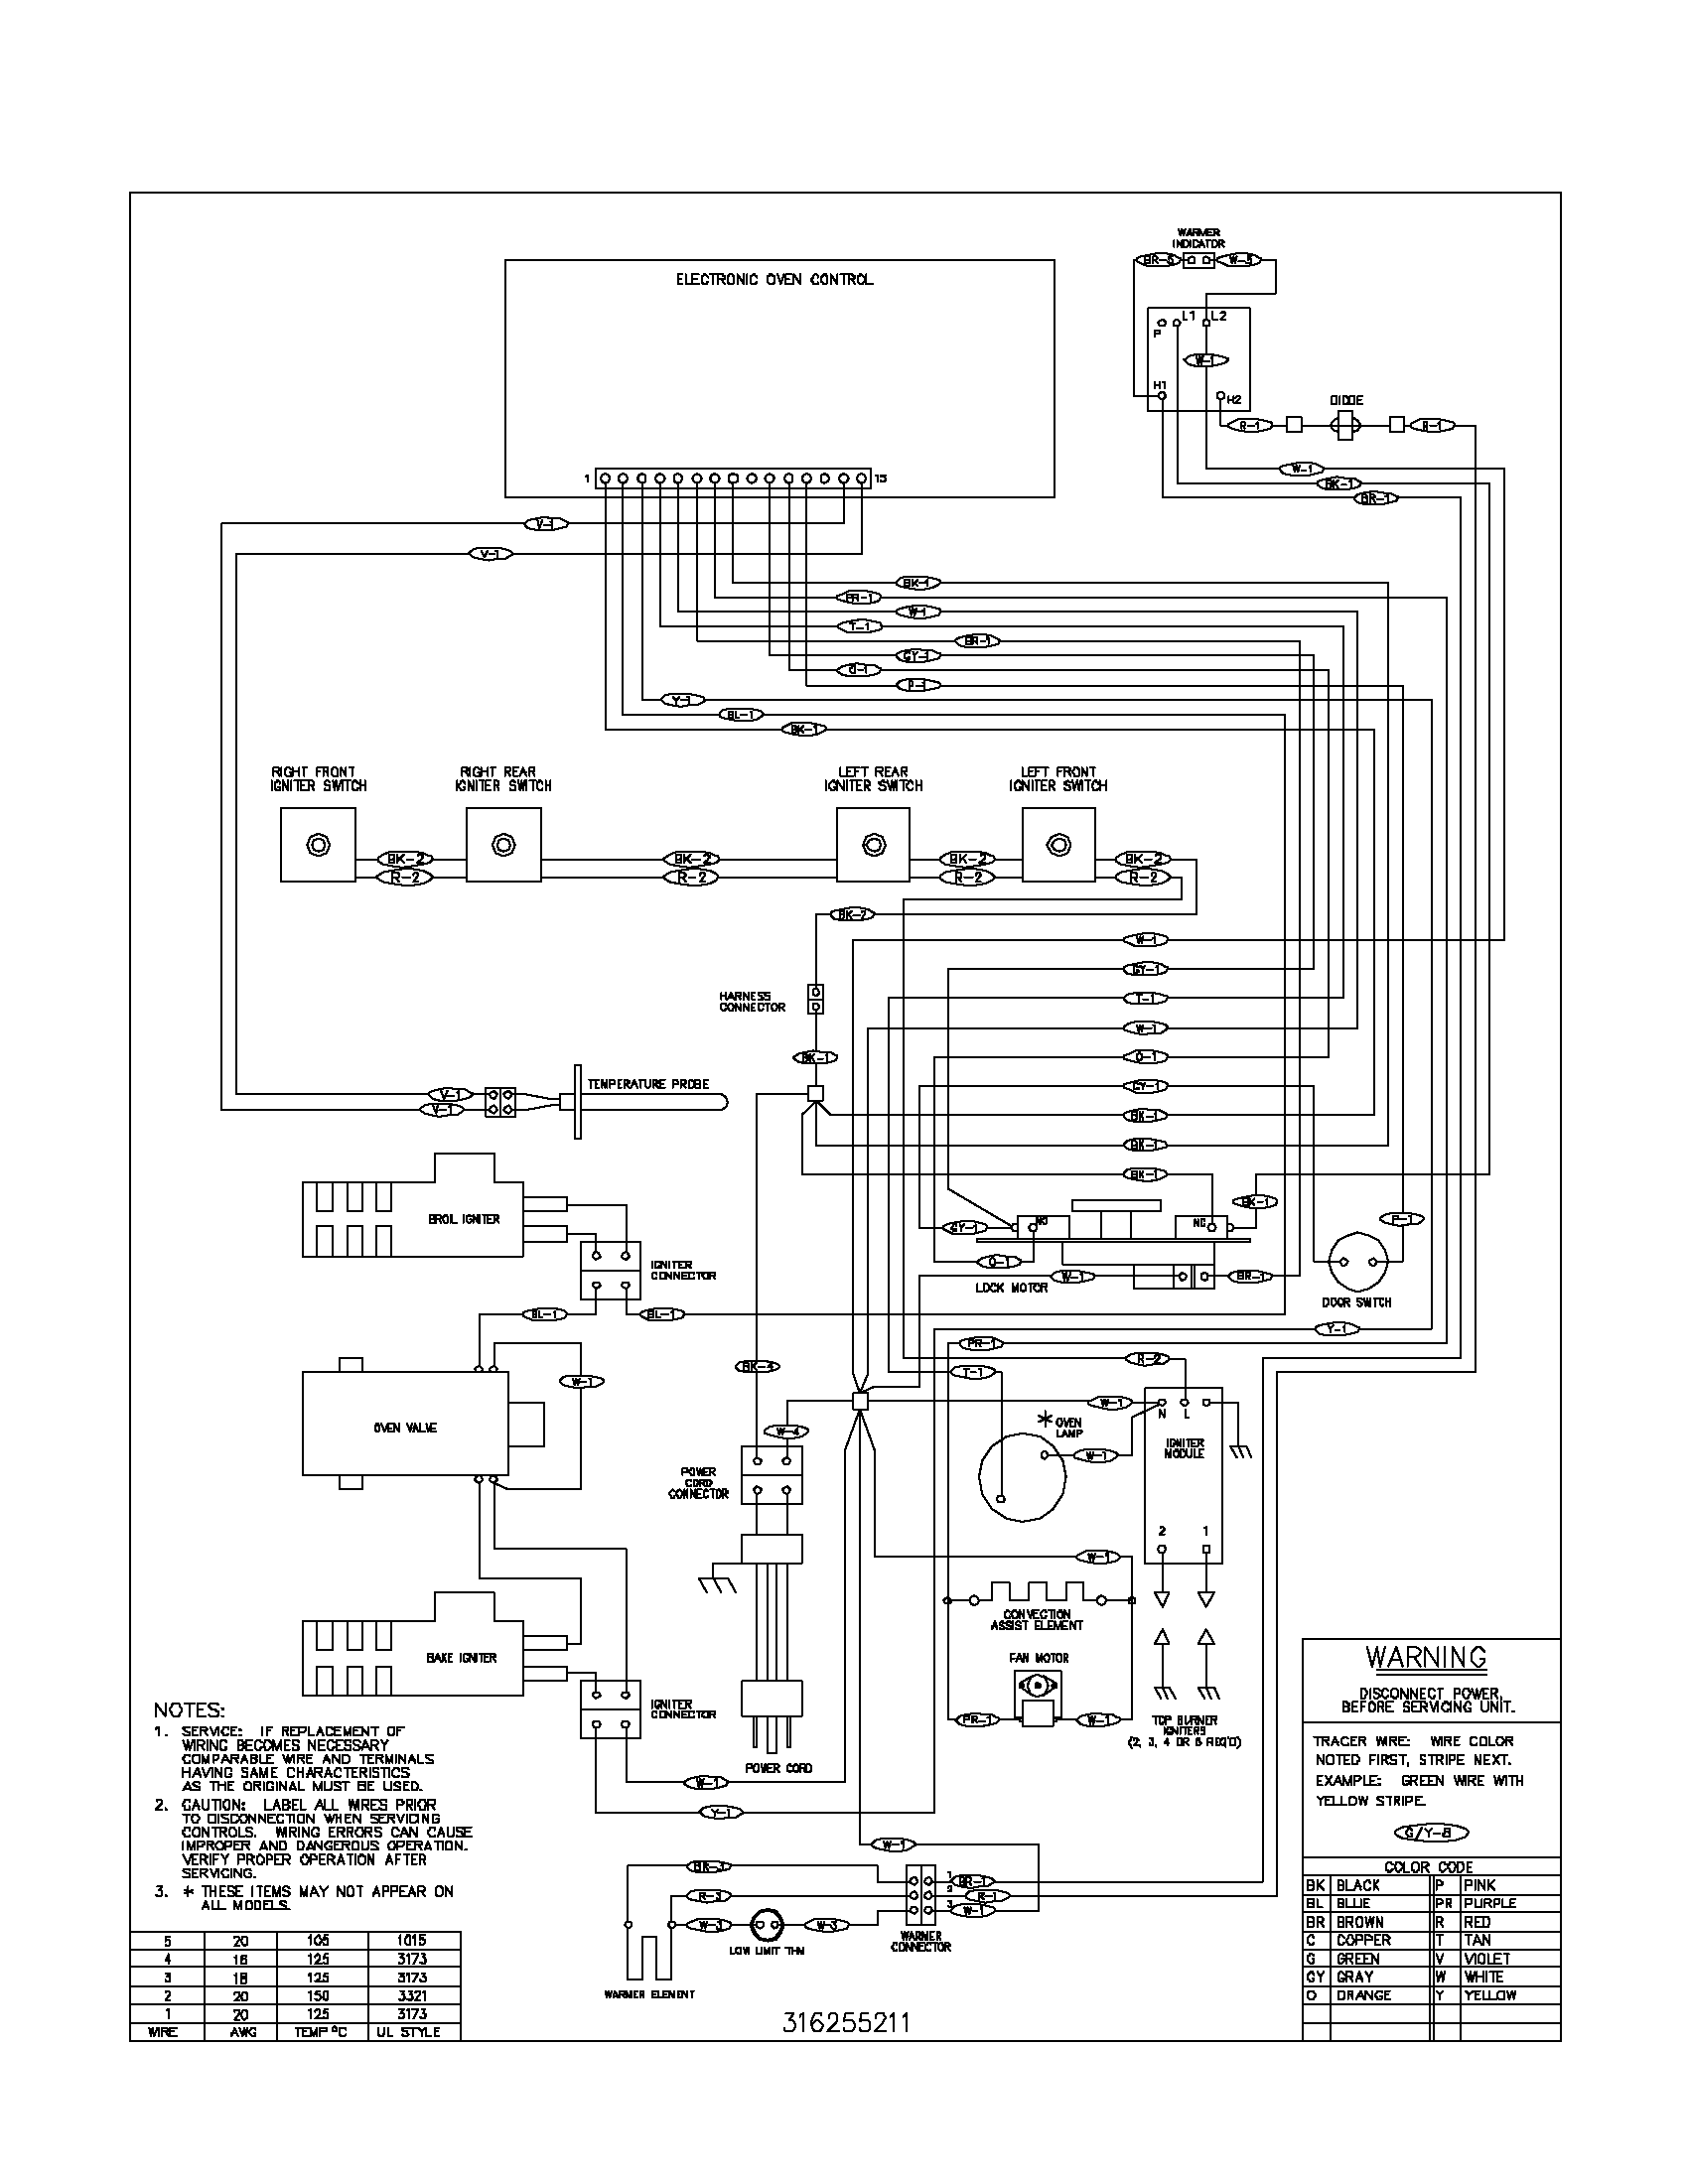 wiring diagram parts?resize\\\\\\\\\\\\\\\\\\\\\\\\\\\\\\\=665%2C861\\\\\\\\\\\\\\\\\\\\\\\\\\\\\\\&ssl\\\\\\\\\\\\\\\\\\\\\\\\\\\\\\\=1 kenmore refrigerator wire diagram kenmore schematic diagram kenmore side by side refrigerator wiring diagram at readyjetset.co